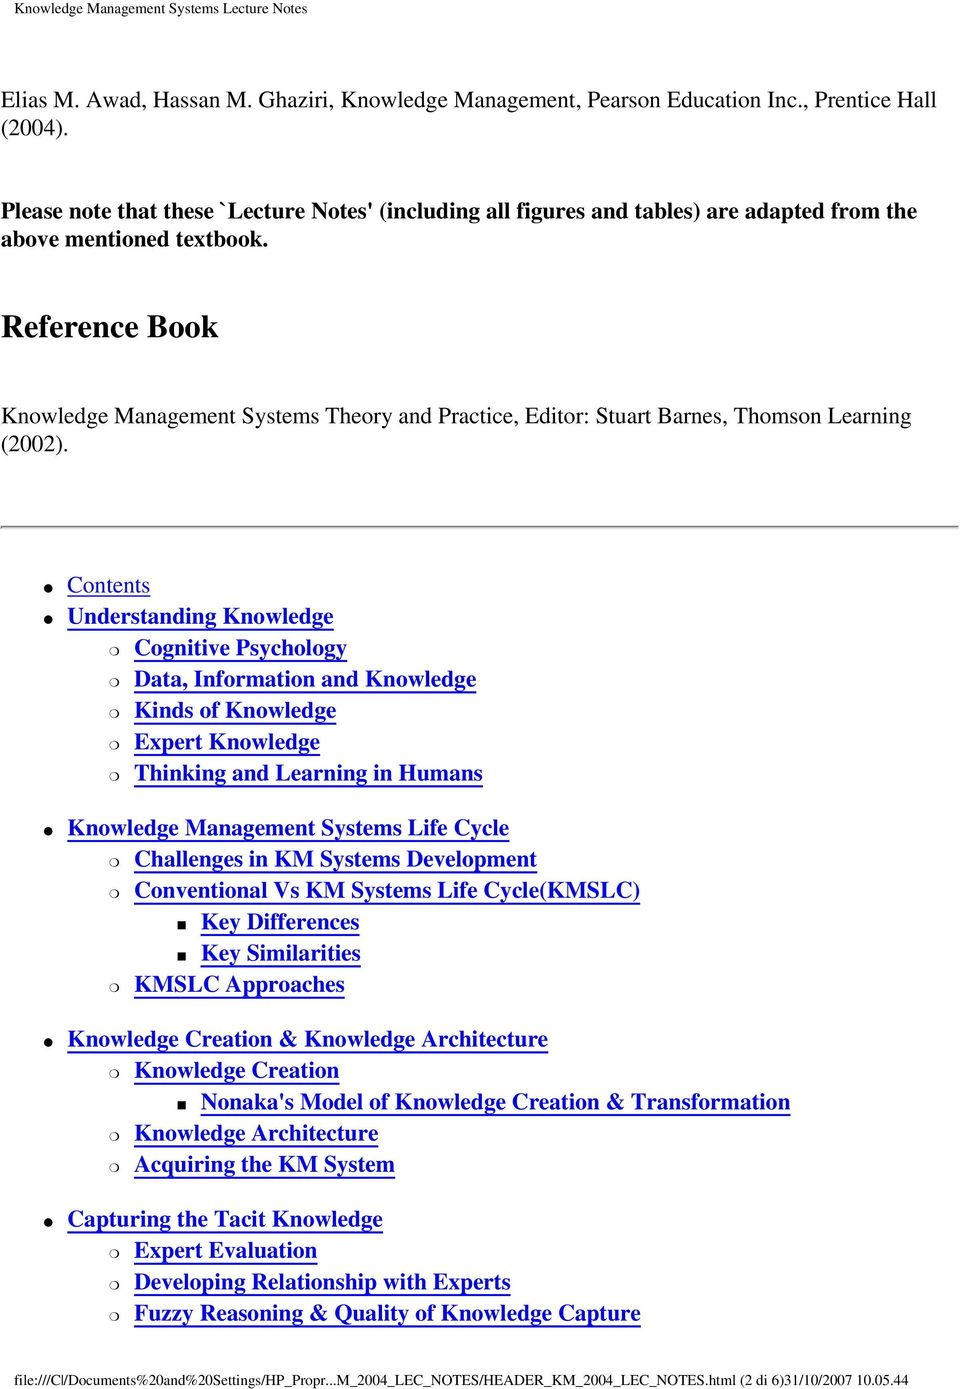 Knowledge Management Systems Lecture Notes Pdf Free Download